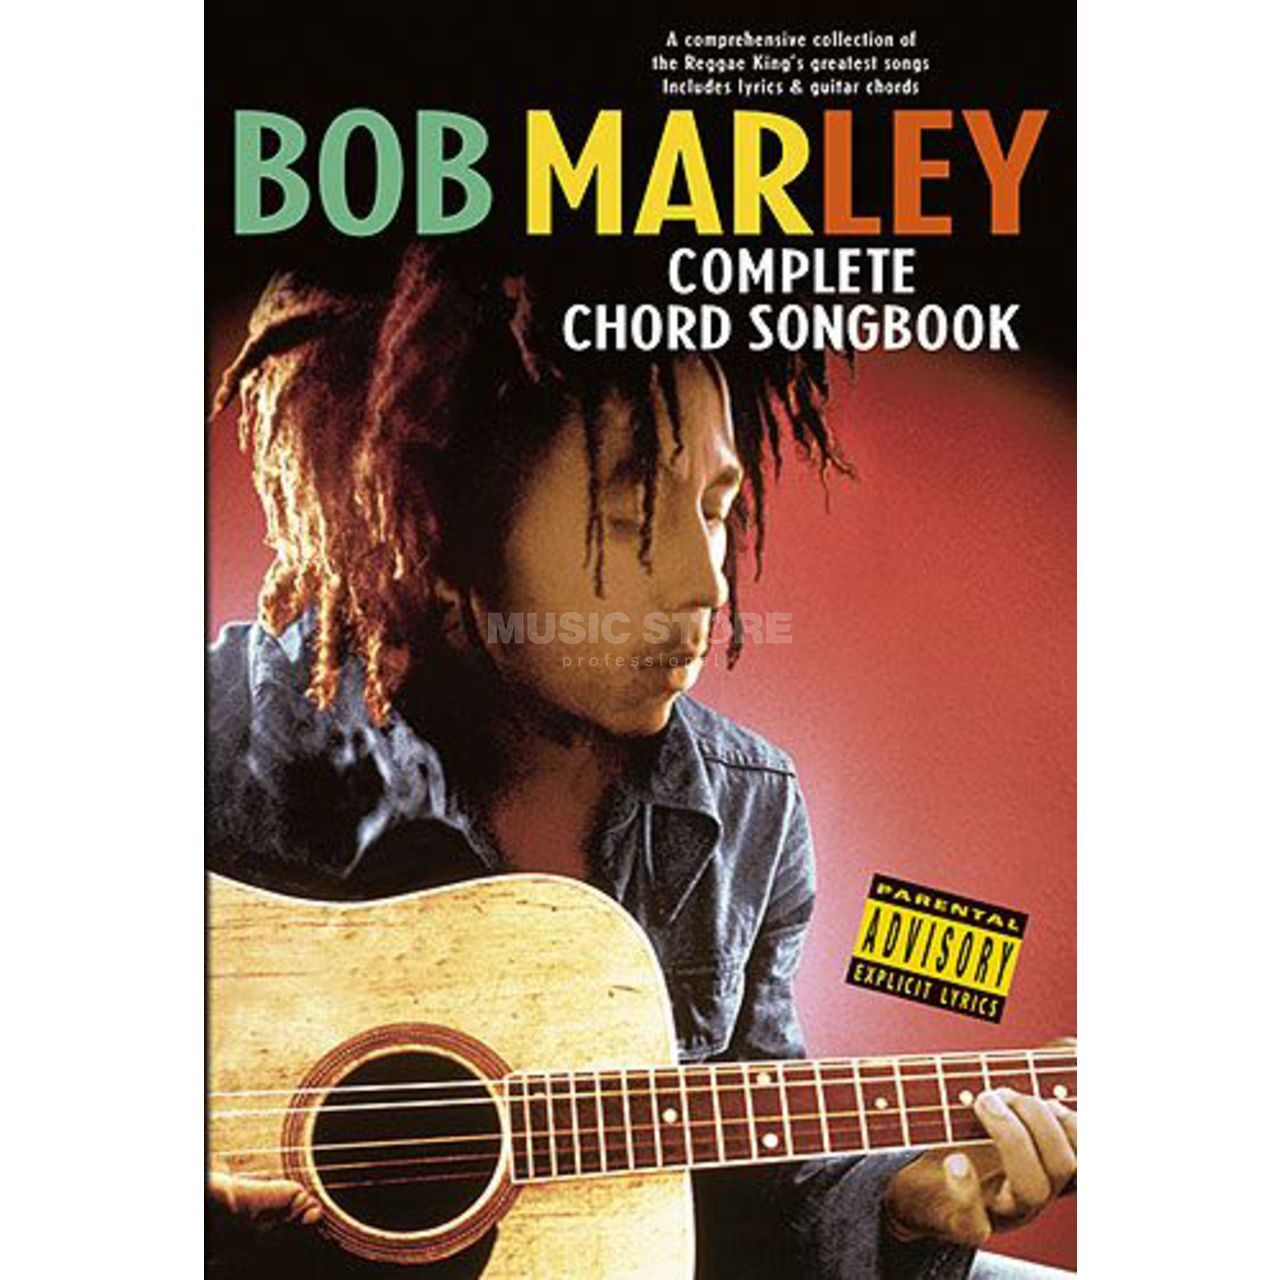 Wise publications chord songbook bob marley lyrics chords hexwebz Gallery